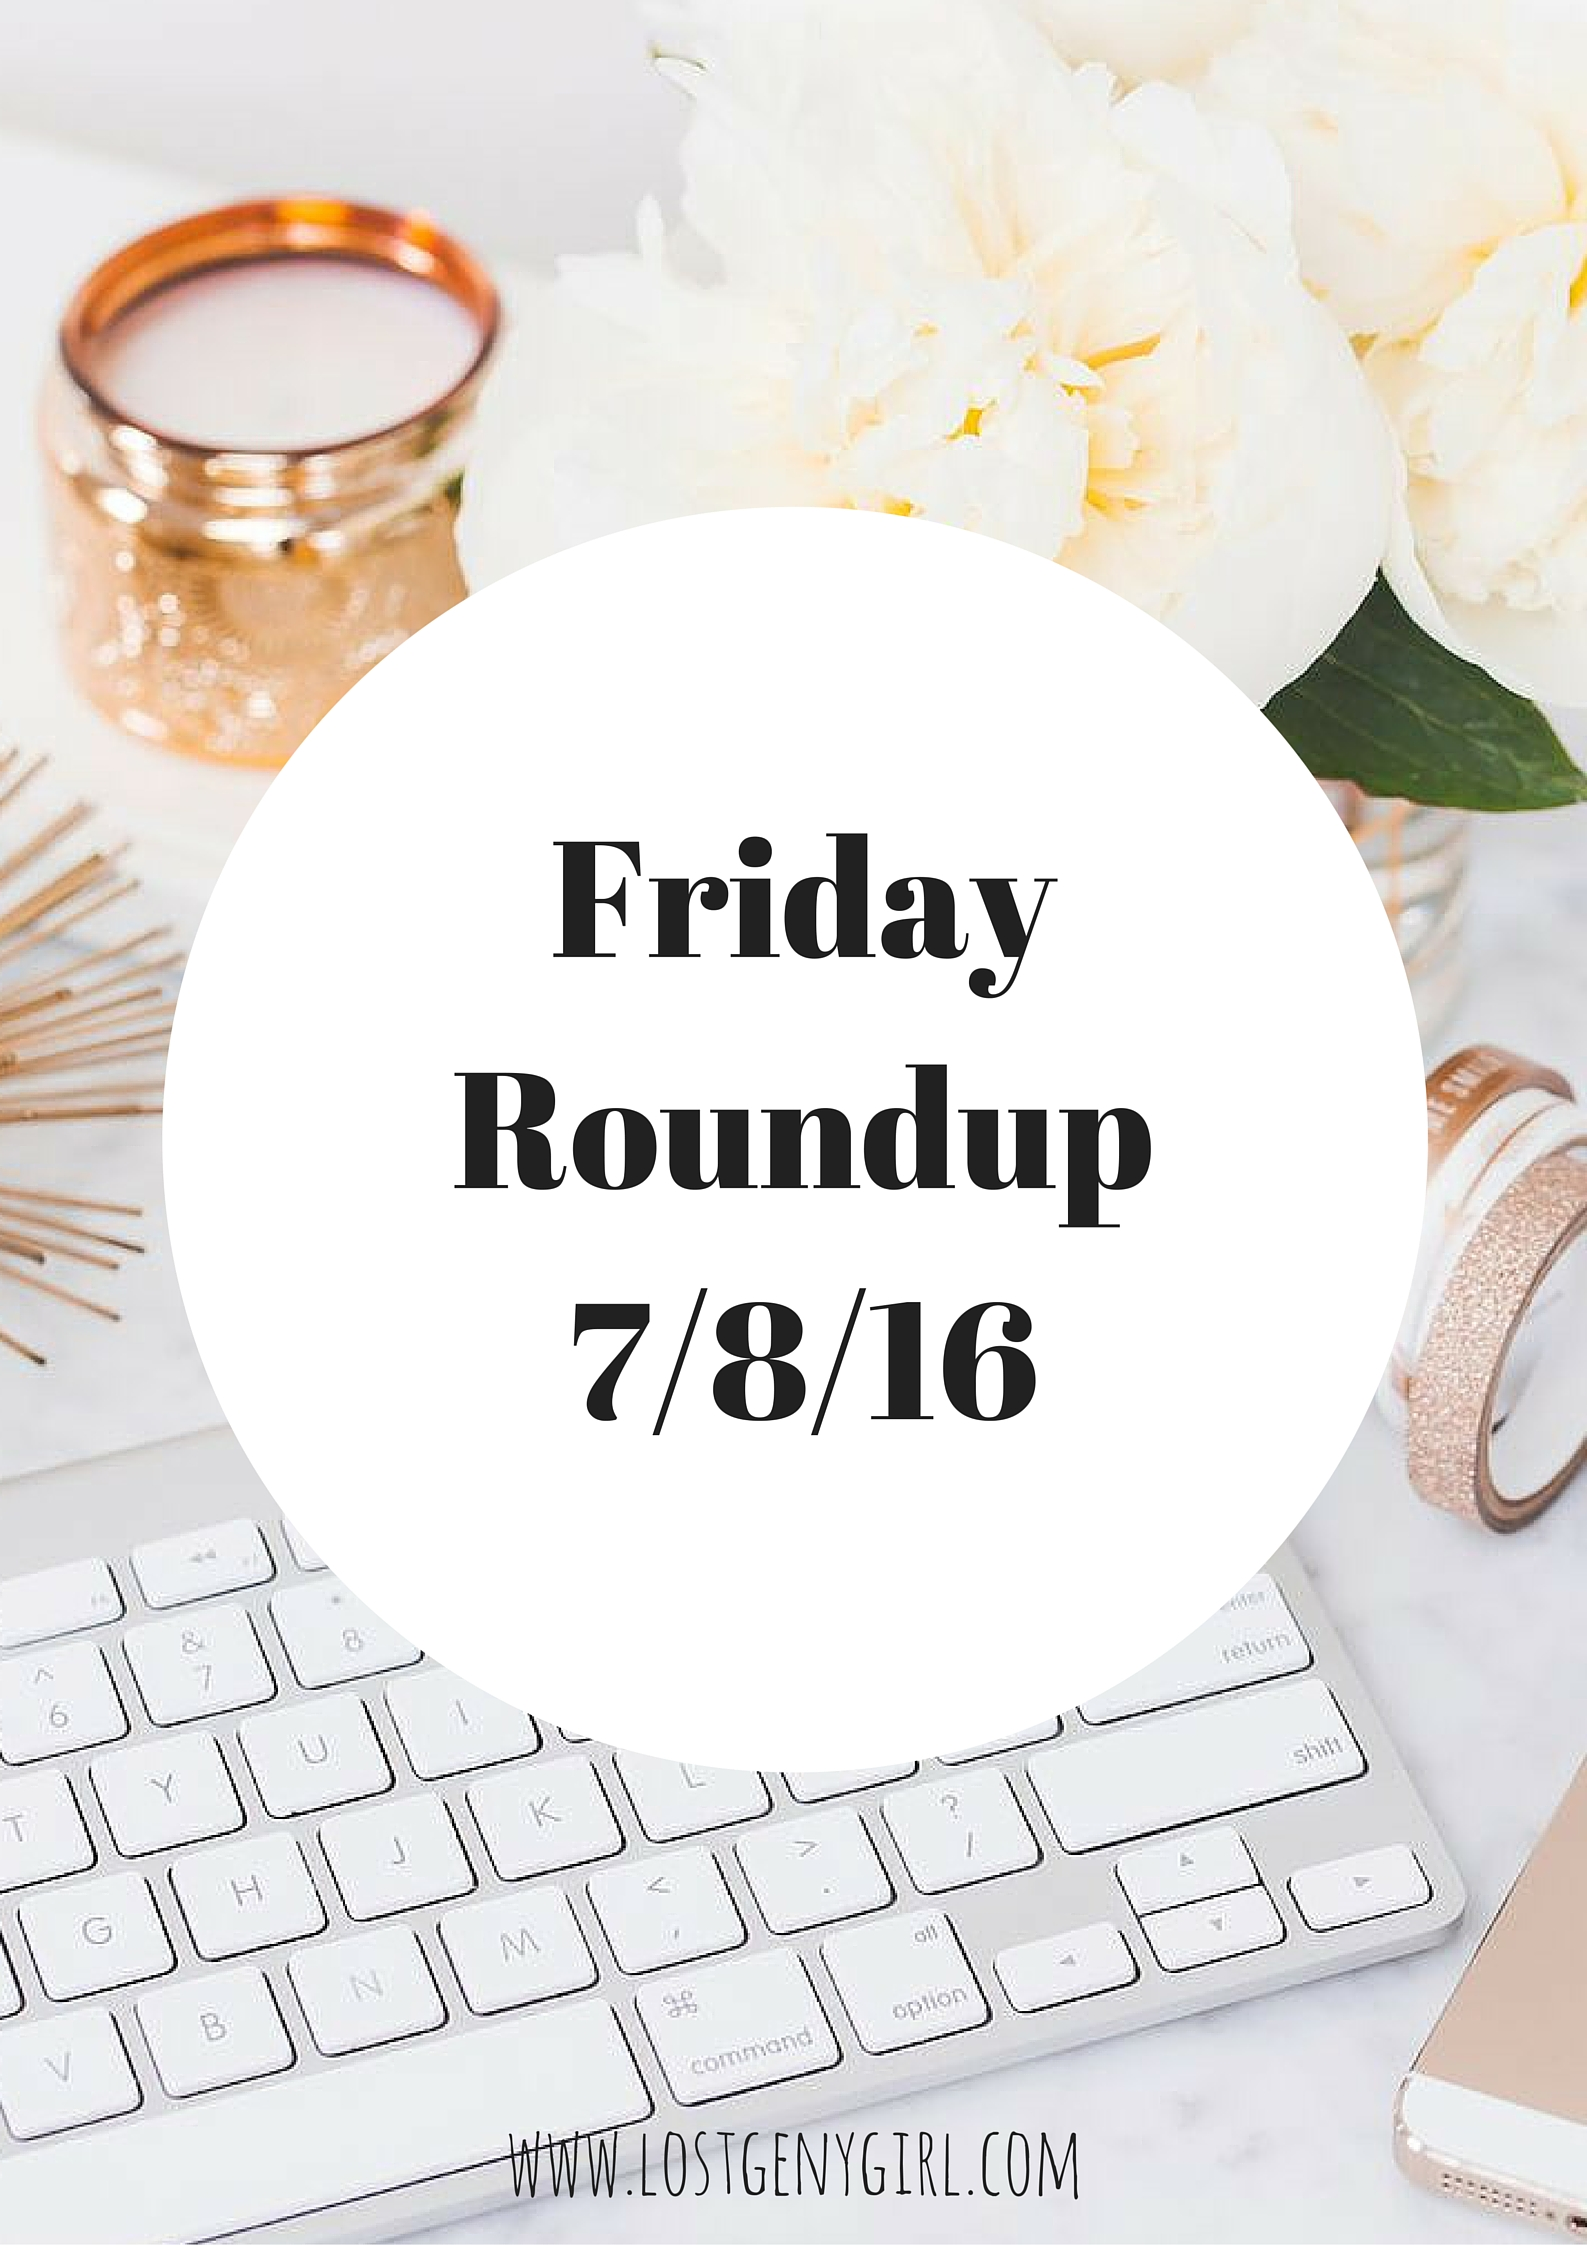 Friday Roundup 7/8/16